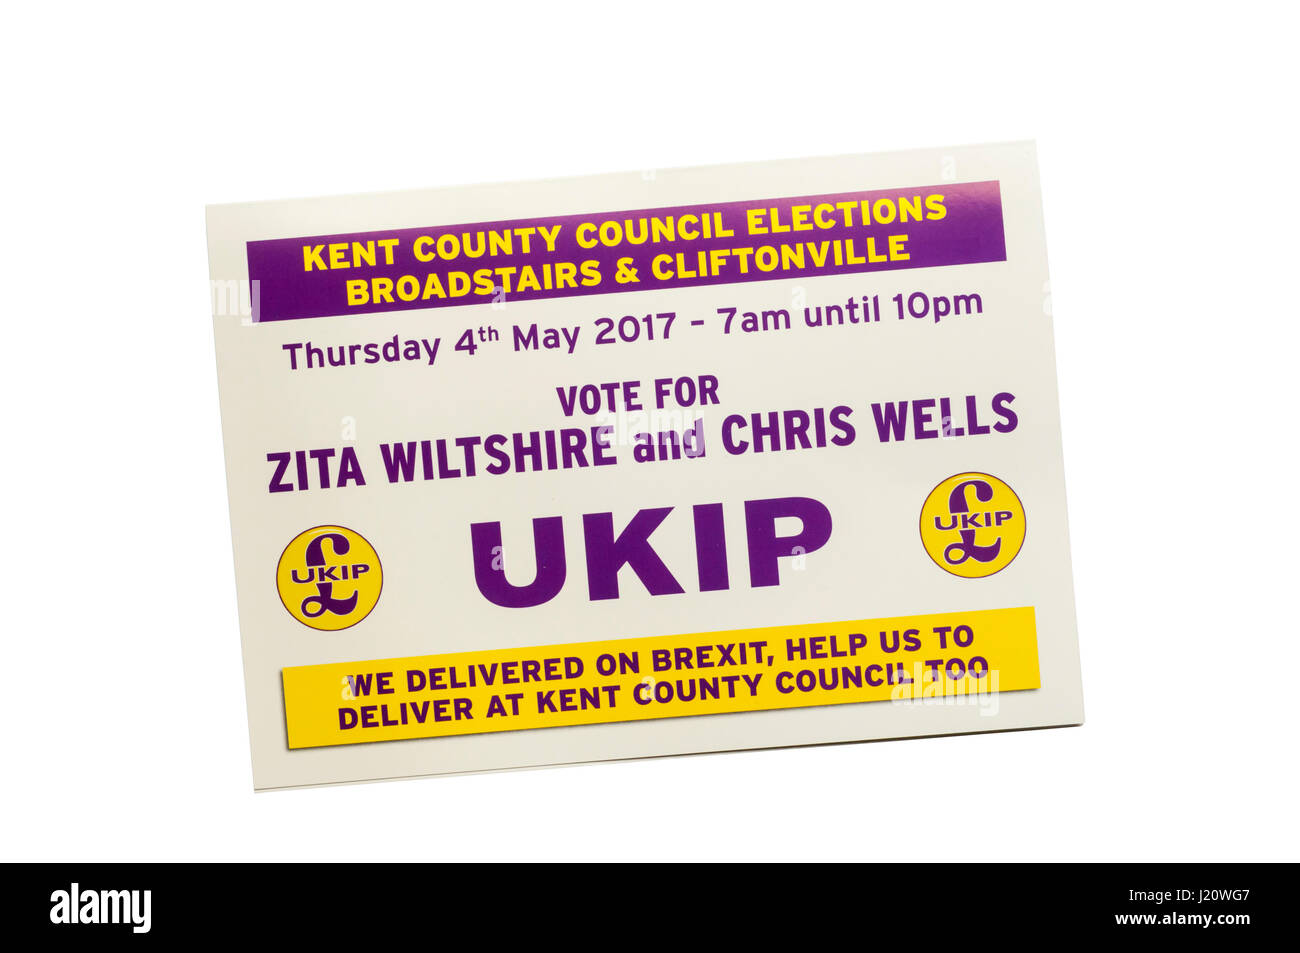 Election leaflet from right wing UKIP, UK Independence party. Canvassing for 2017 Kent County Council elections - Stock Image